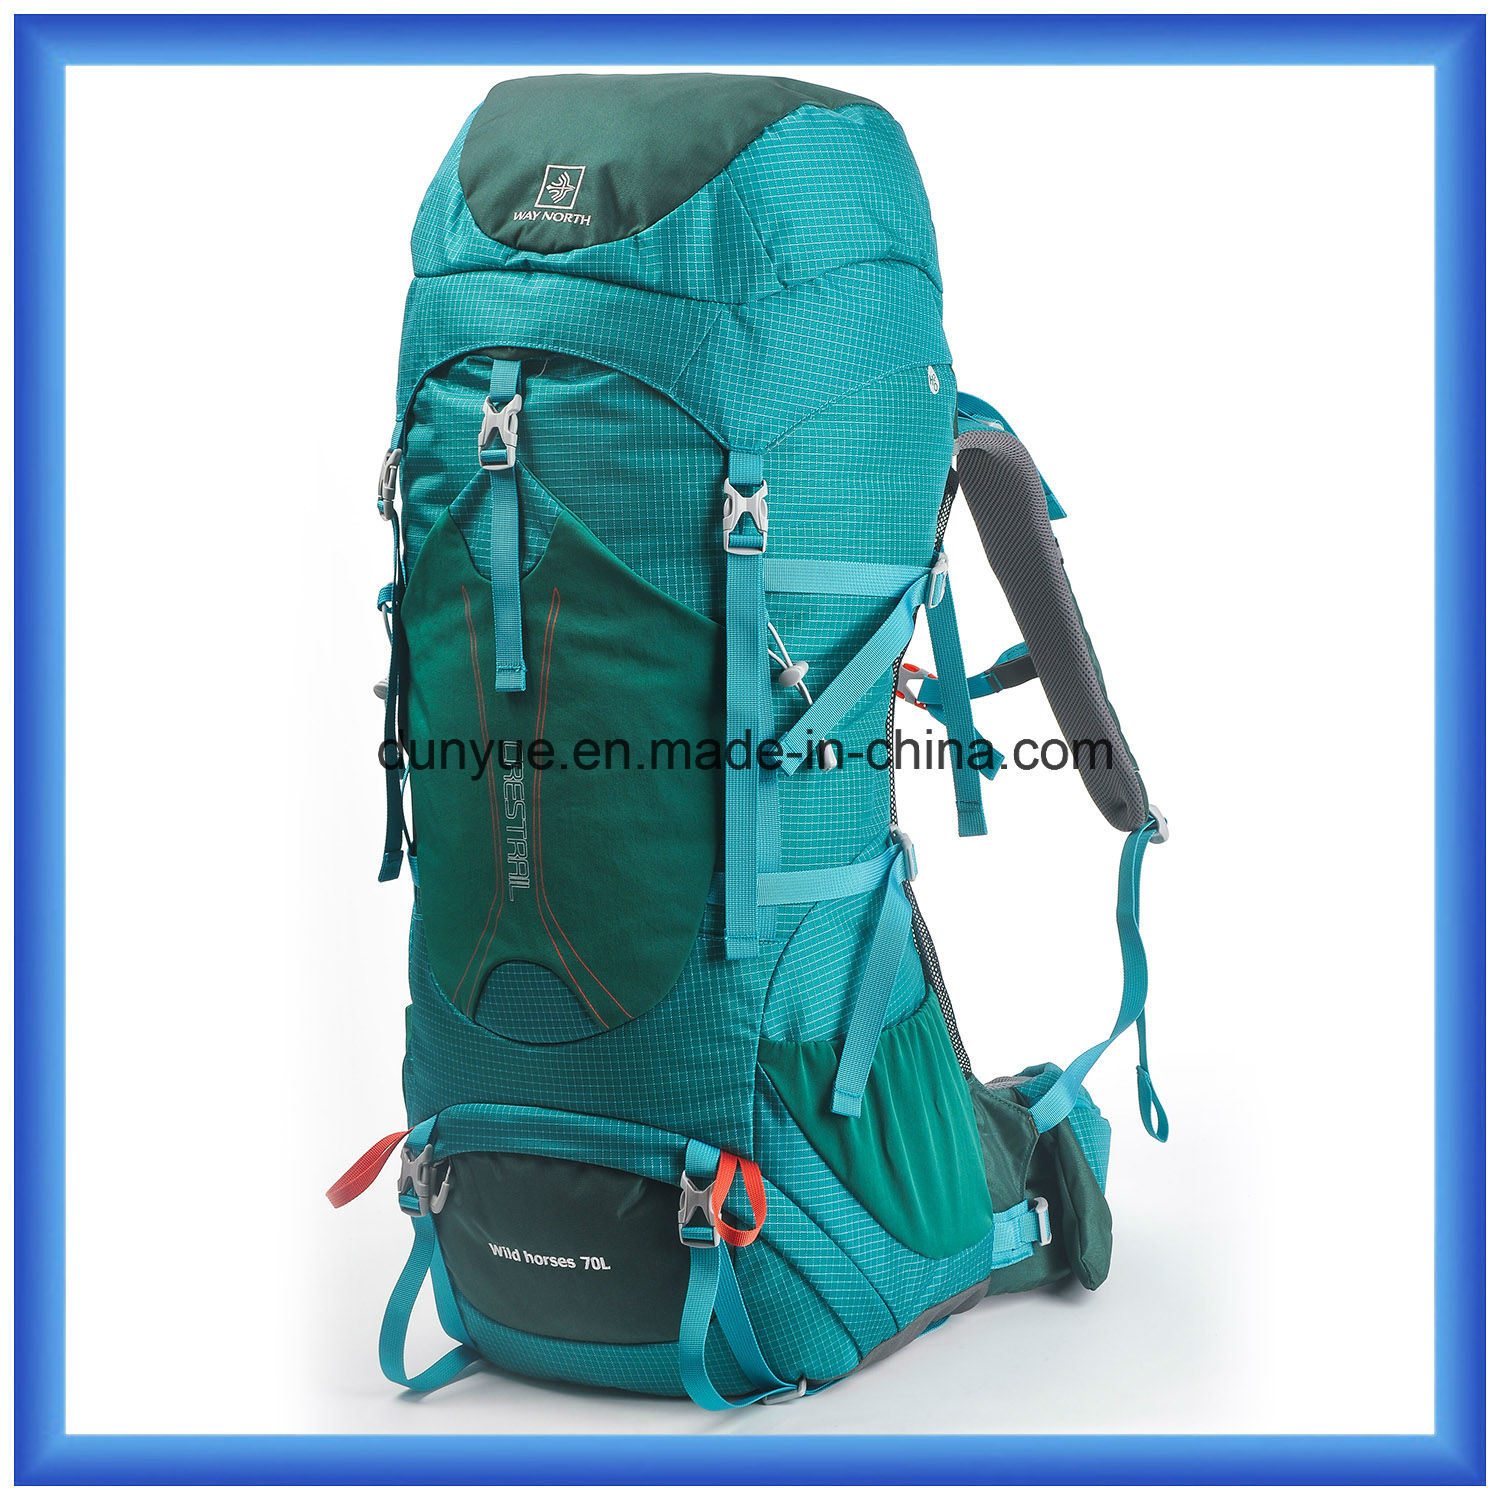 Large Capacity 70L Practical Mountaineering Backpack Bag, Outdoor Hiking Backpack, Multi-Functional Custom Climbing Camping Backpack